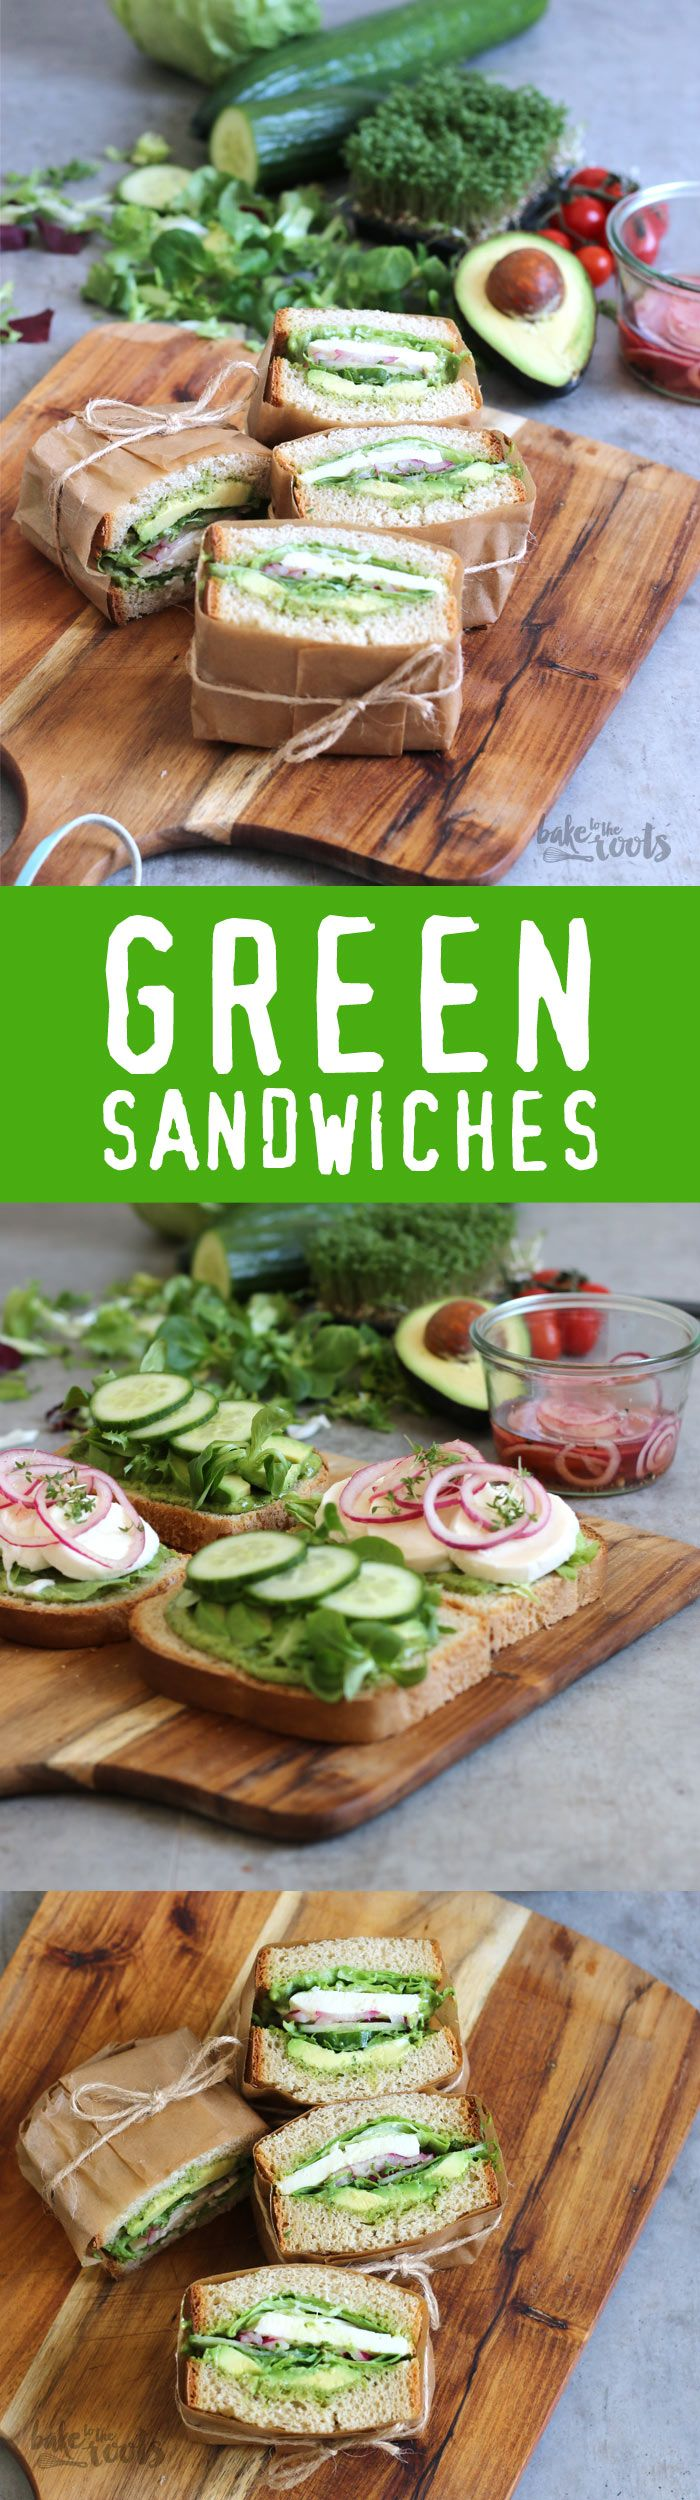 Photo of Green sandwiches Bake to the roots